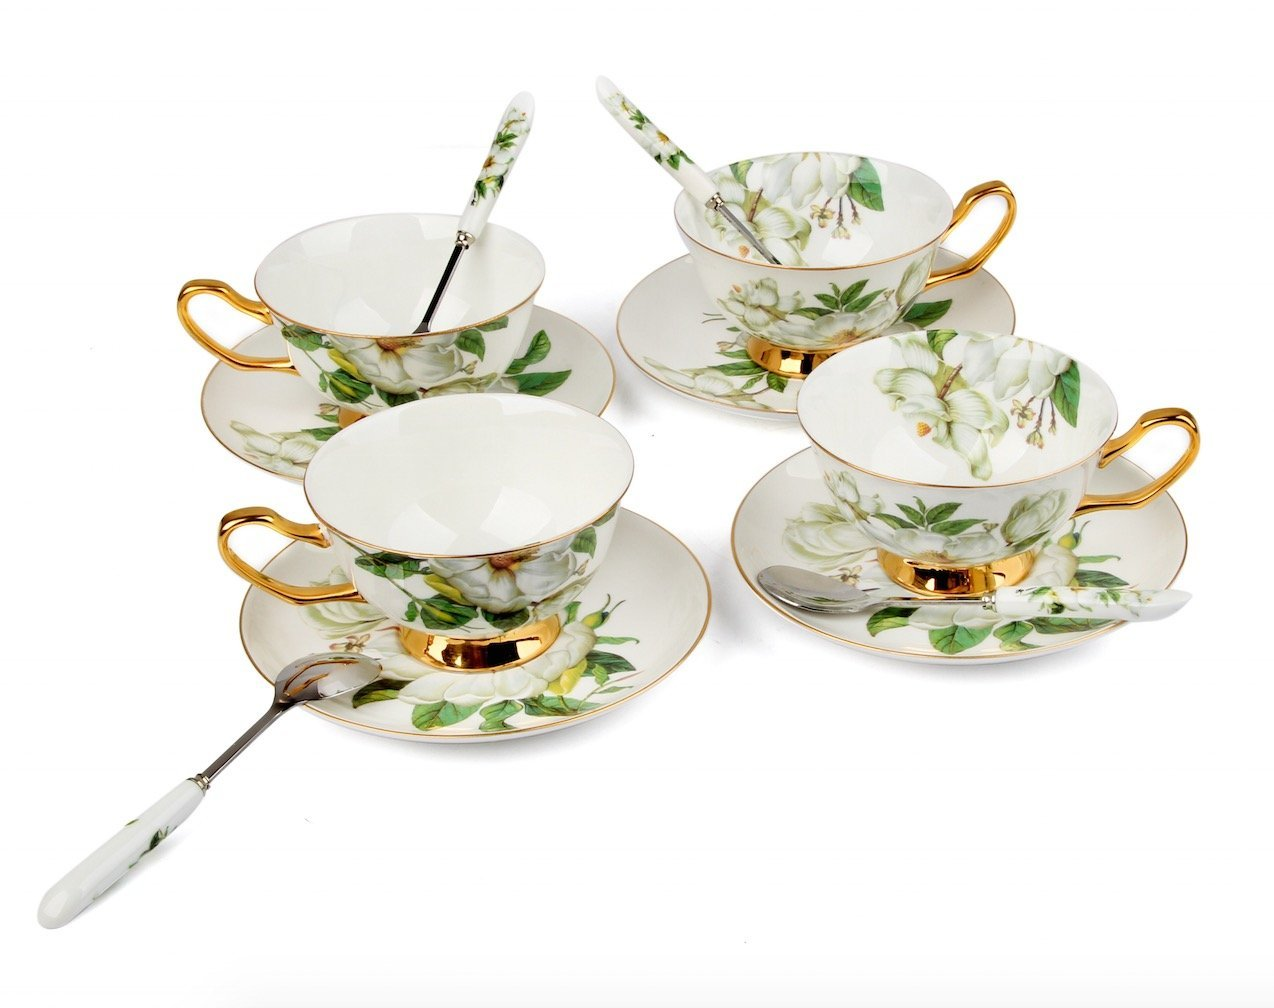 Magnolia Grandiflora Porcelain Tea Cup and Saucer Coffee Cup Set and Dinnerware (Cup Set of 4)